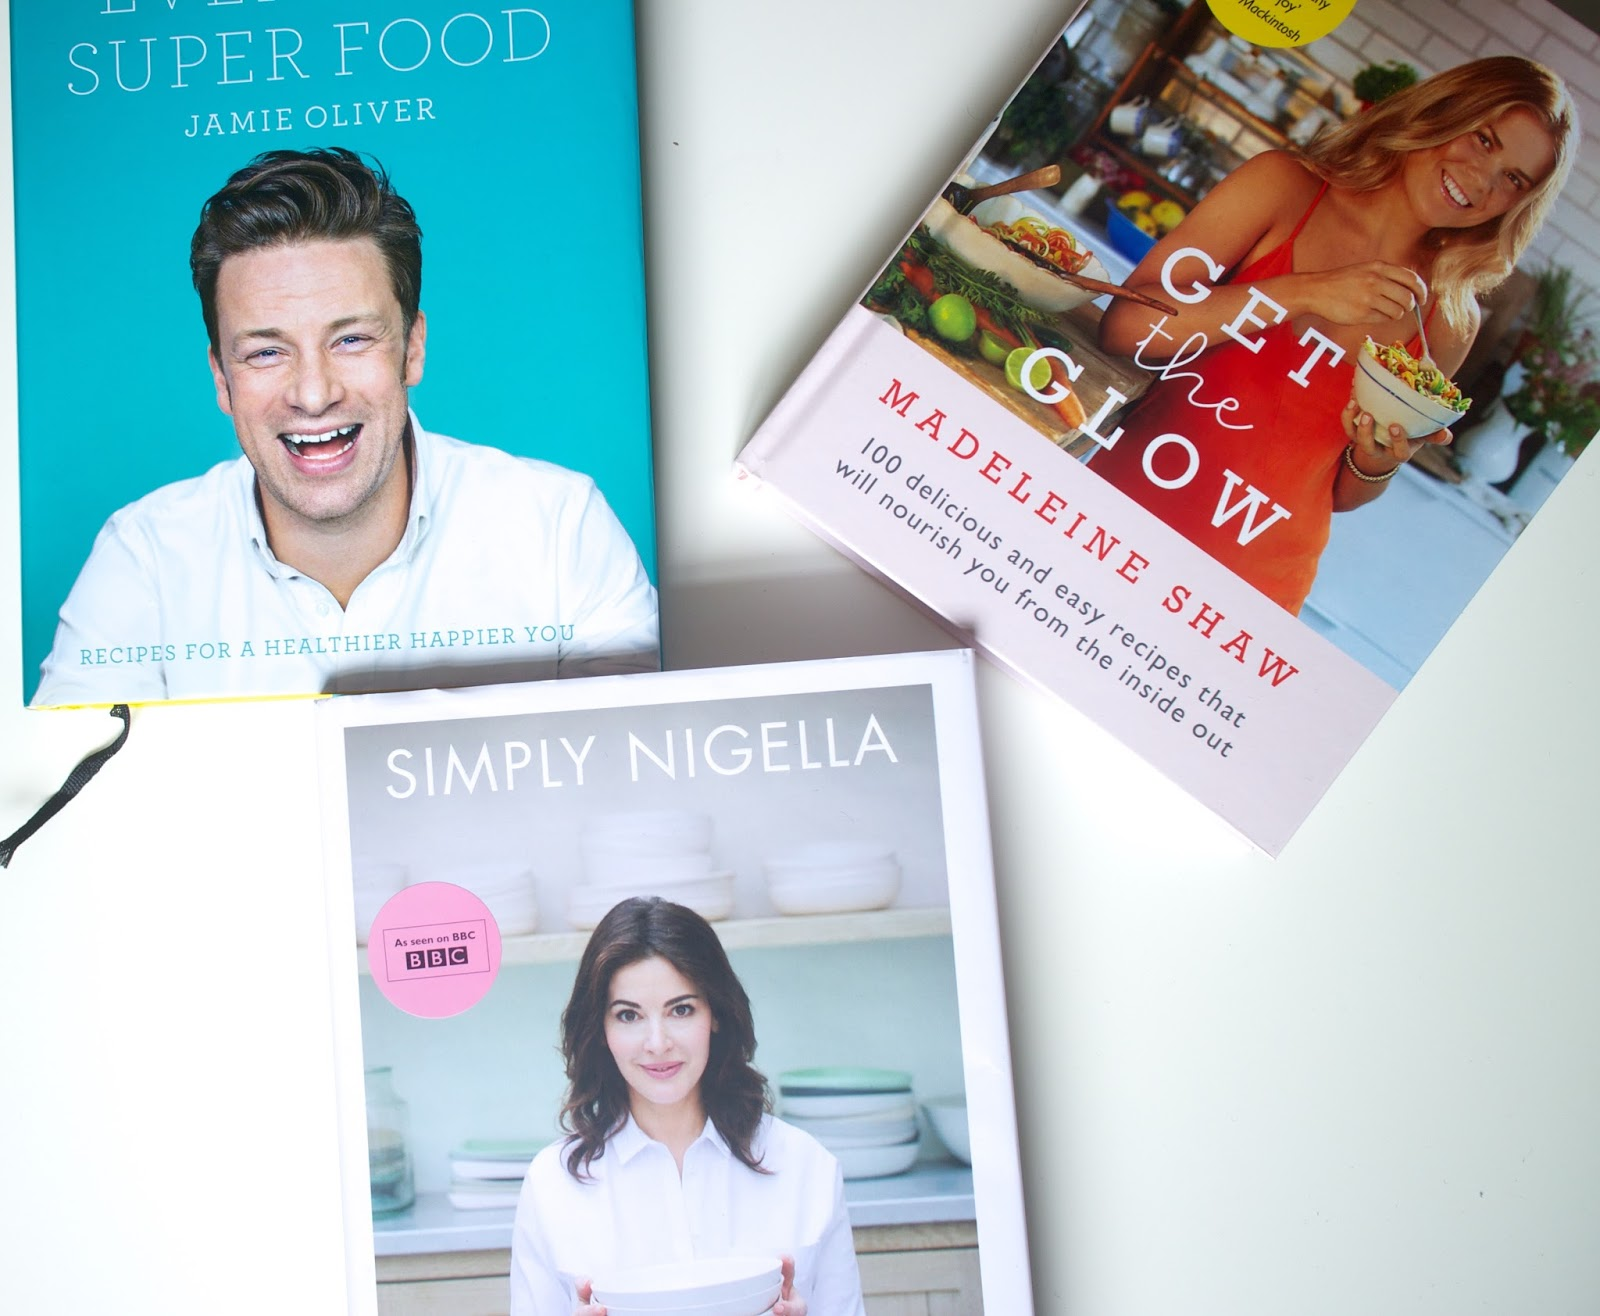 She's So Lucy 3 Autumn Winter 2015 Christmas Healthy Cookbooks Nigella Lawson Simply Jamie Oliver's Super Foods Get The Glow Madeleine Shaw Review